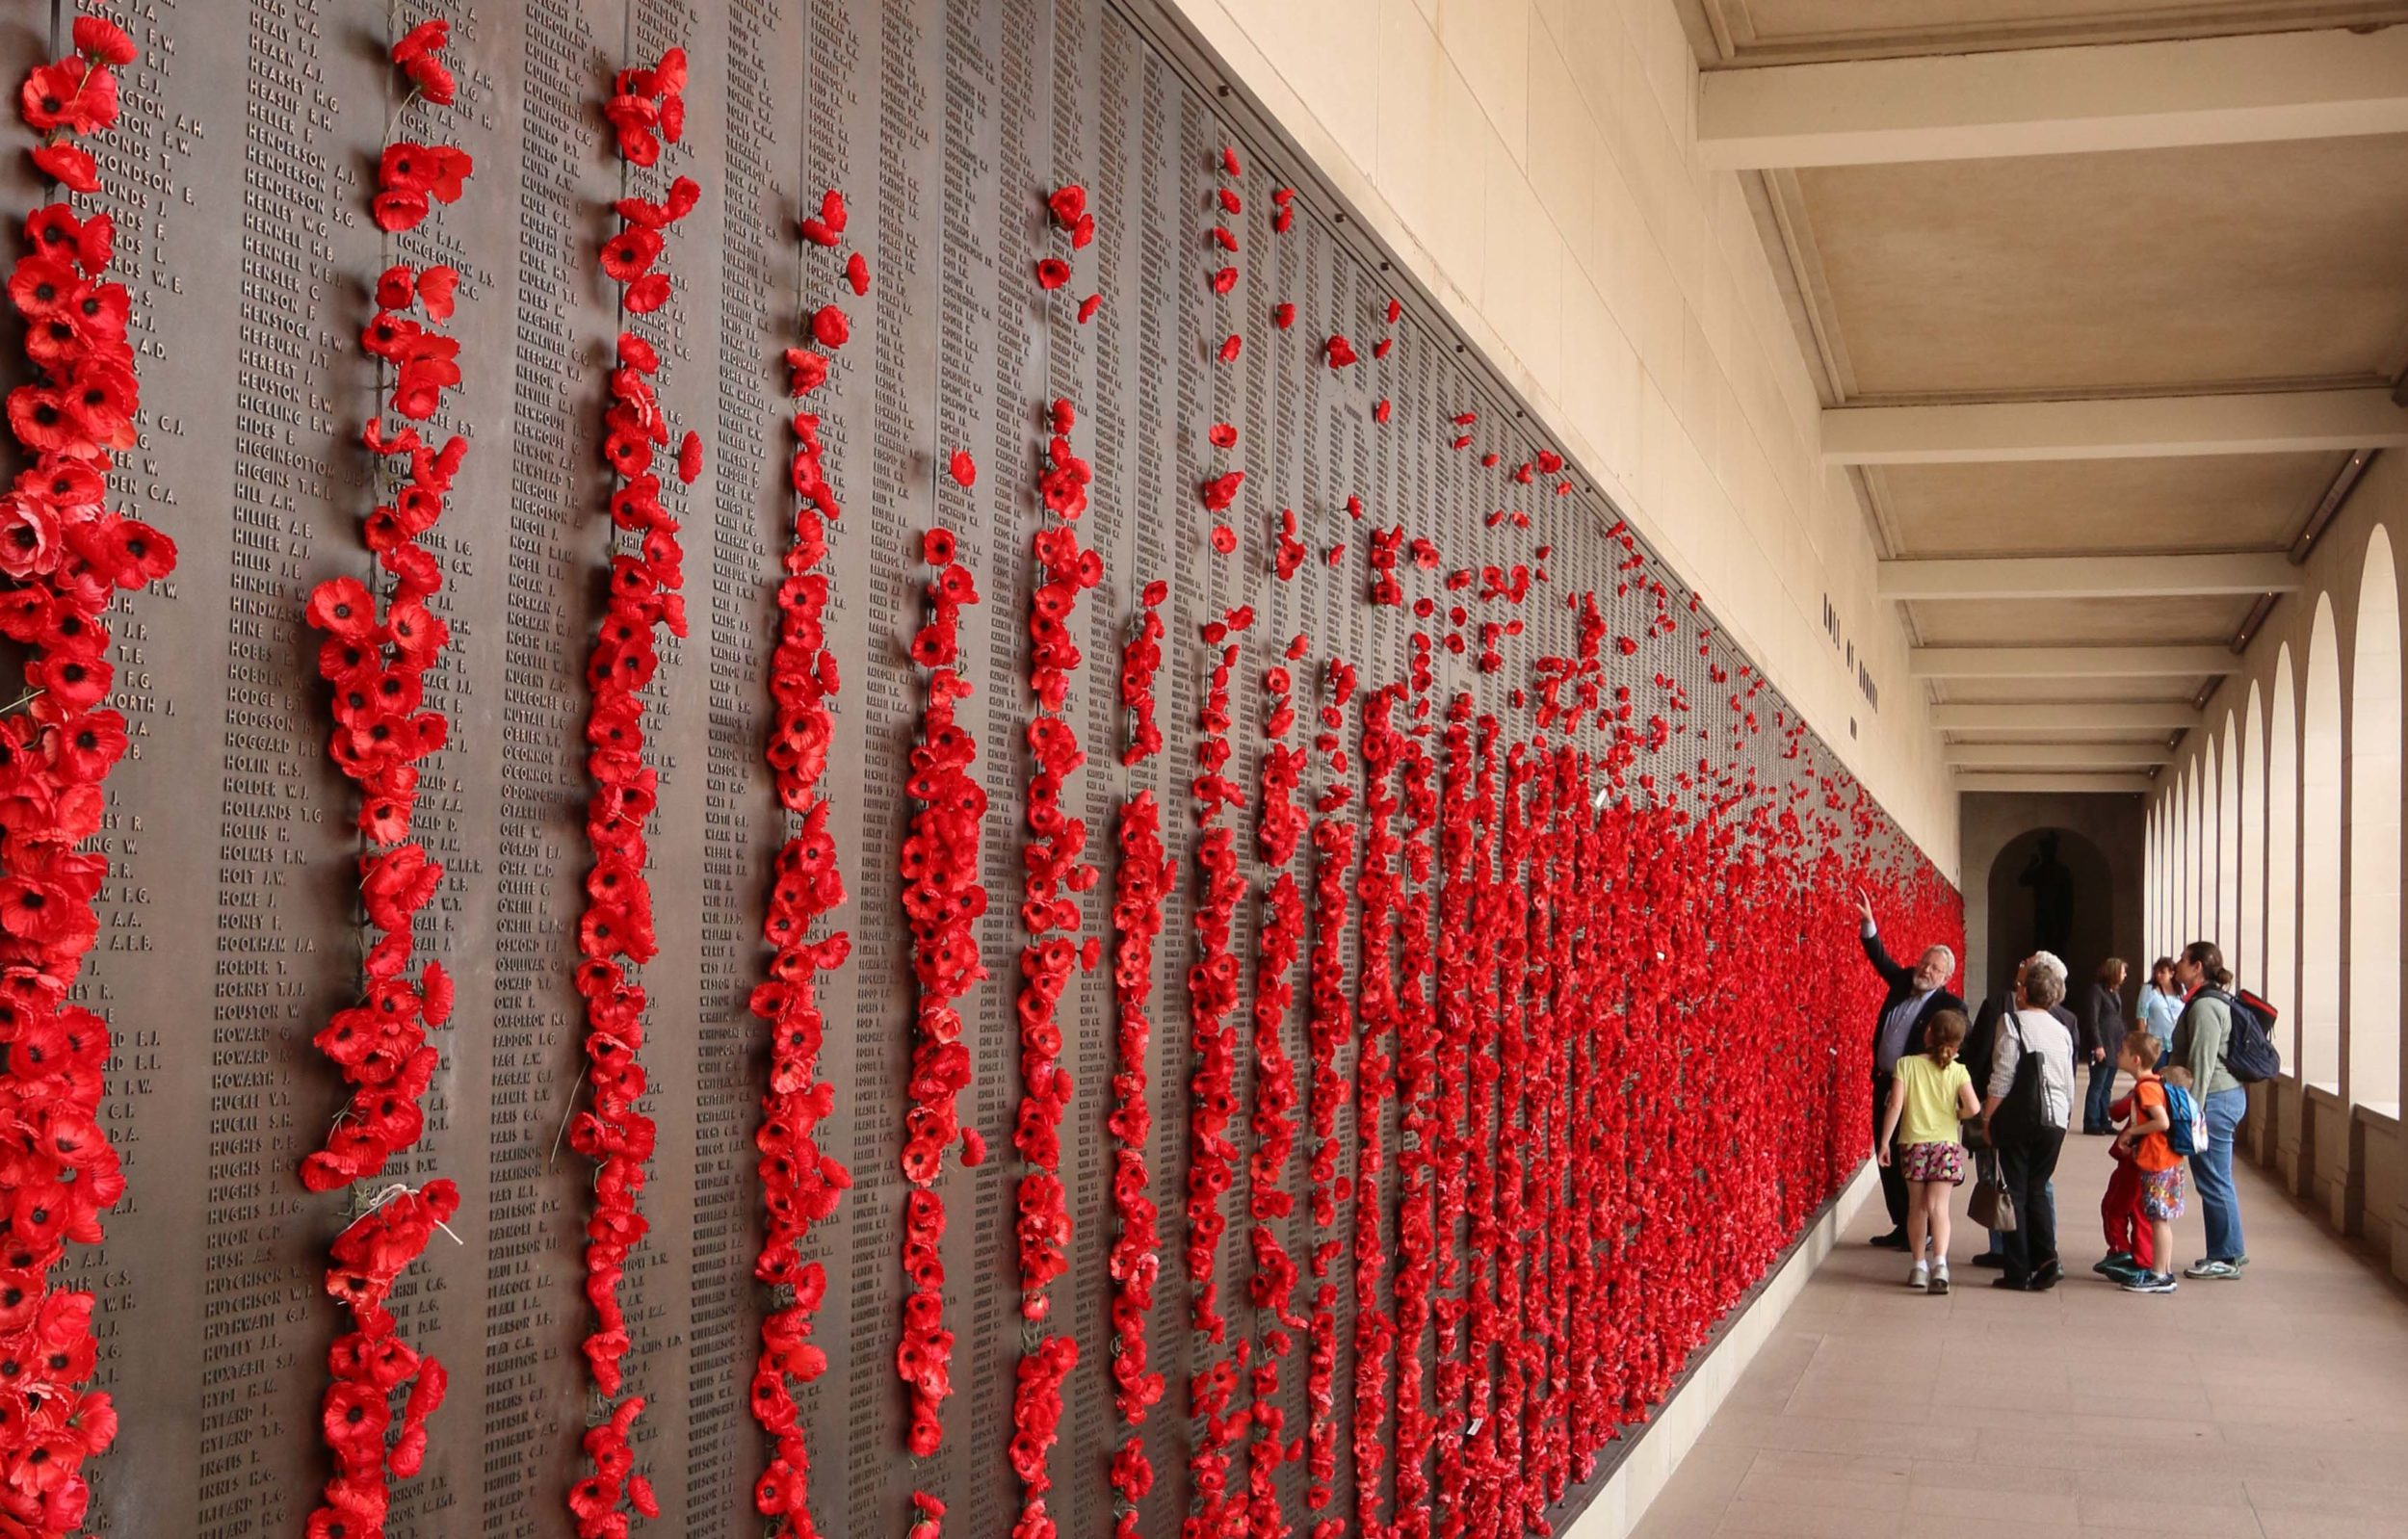 The Roll of Honour at the Australian War Memorial in Canberra